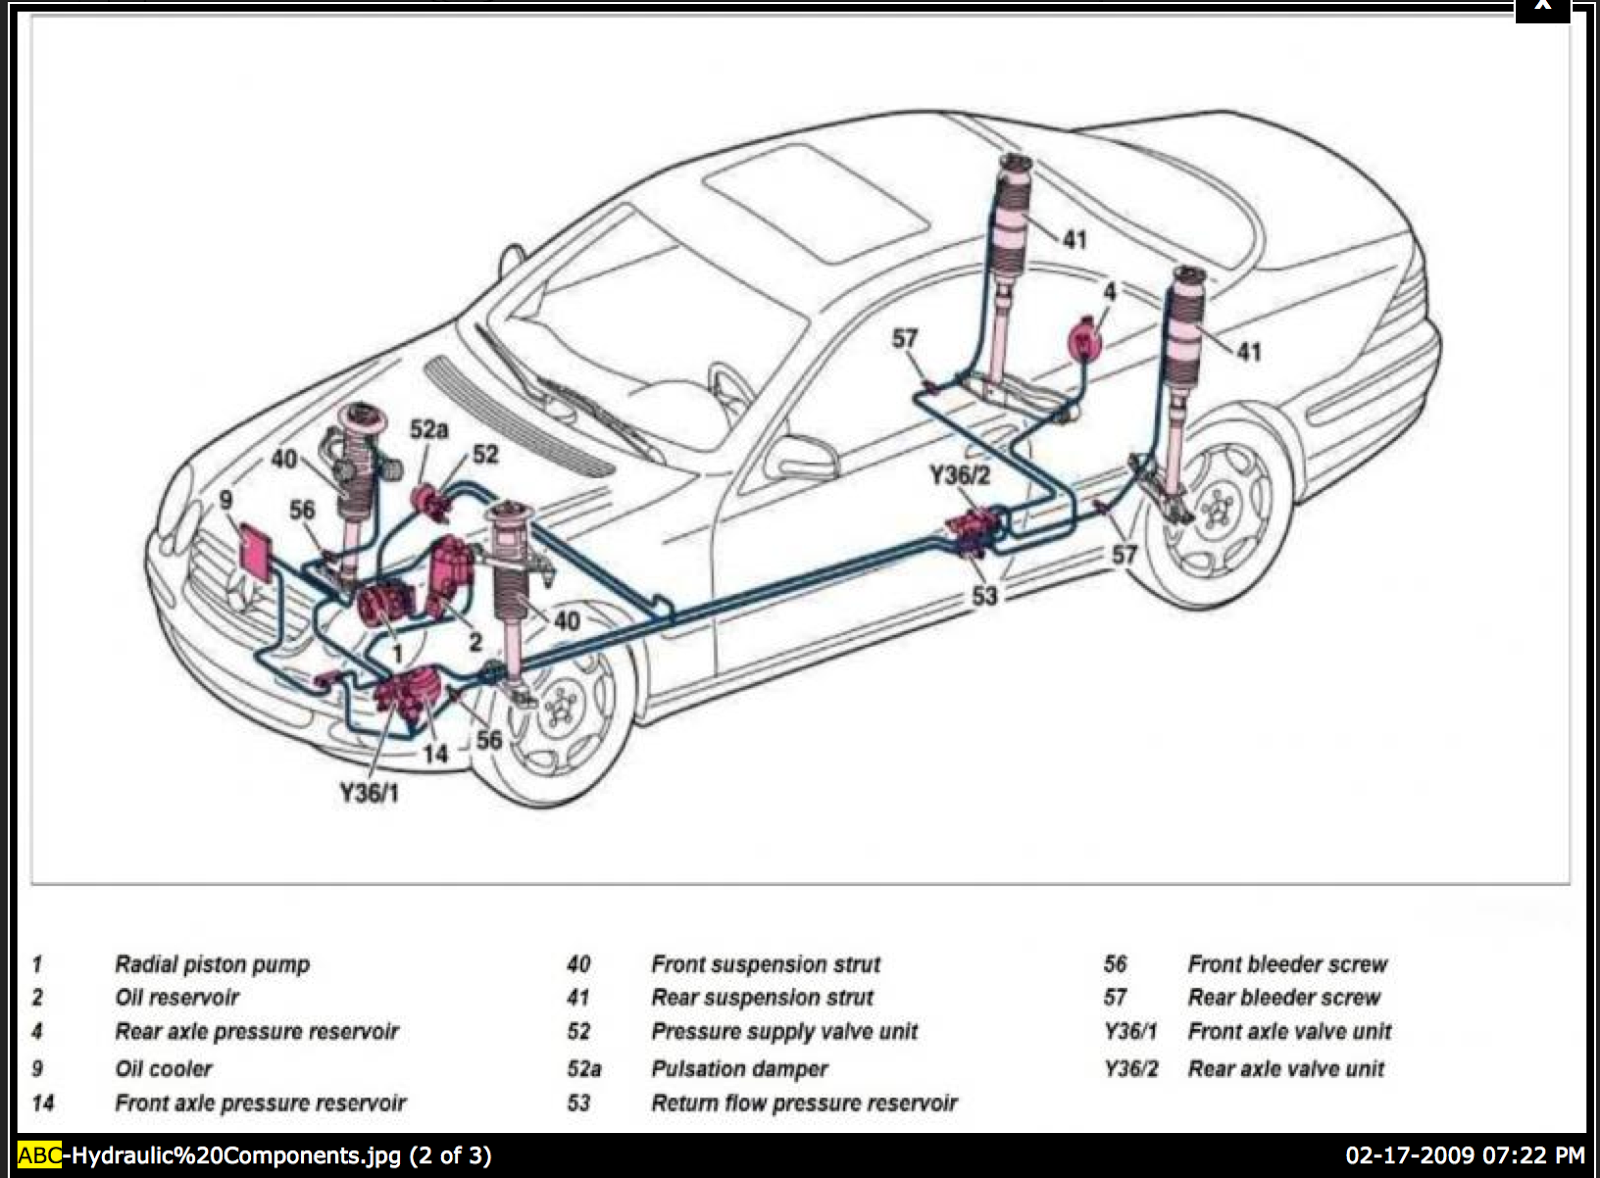 Mercedes Benz Sl 500 Engine Diagram - Auto Electrical Wiring Diagram •